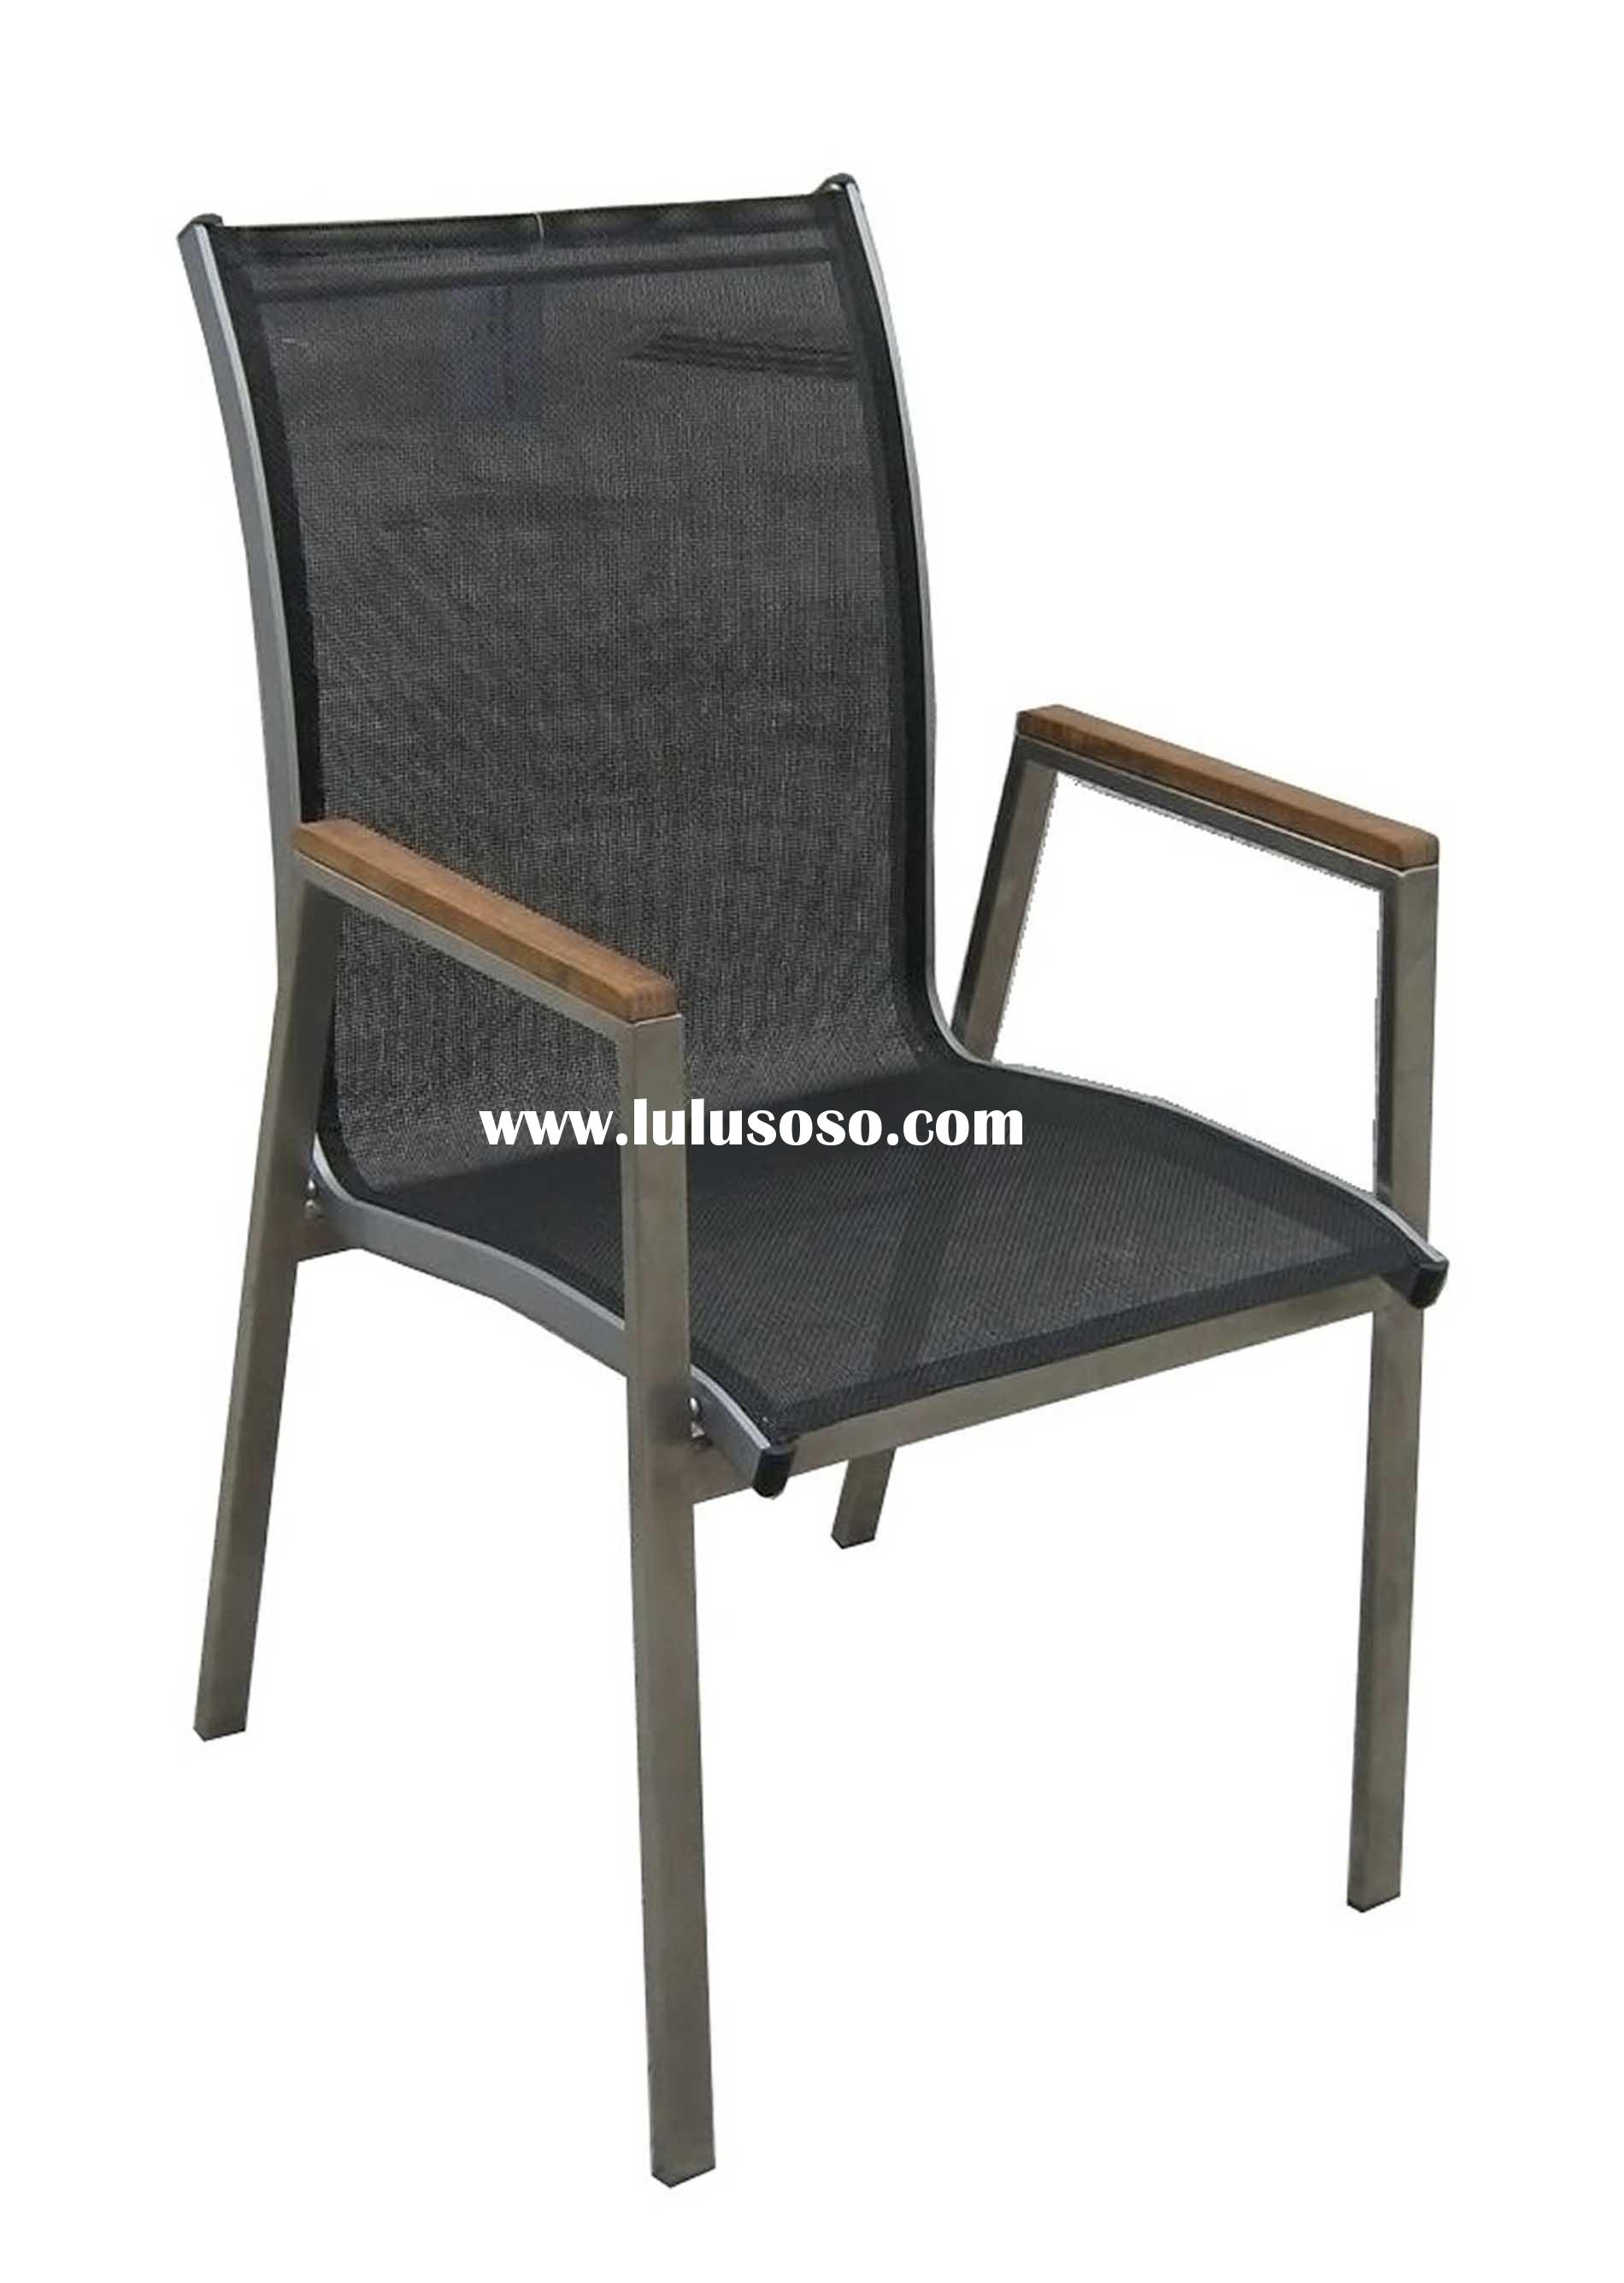 304 grade stainless steel chair stainless steel furniture